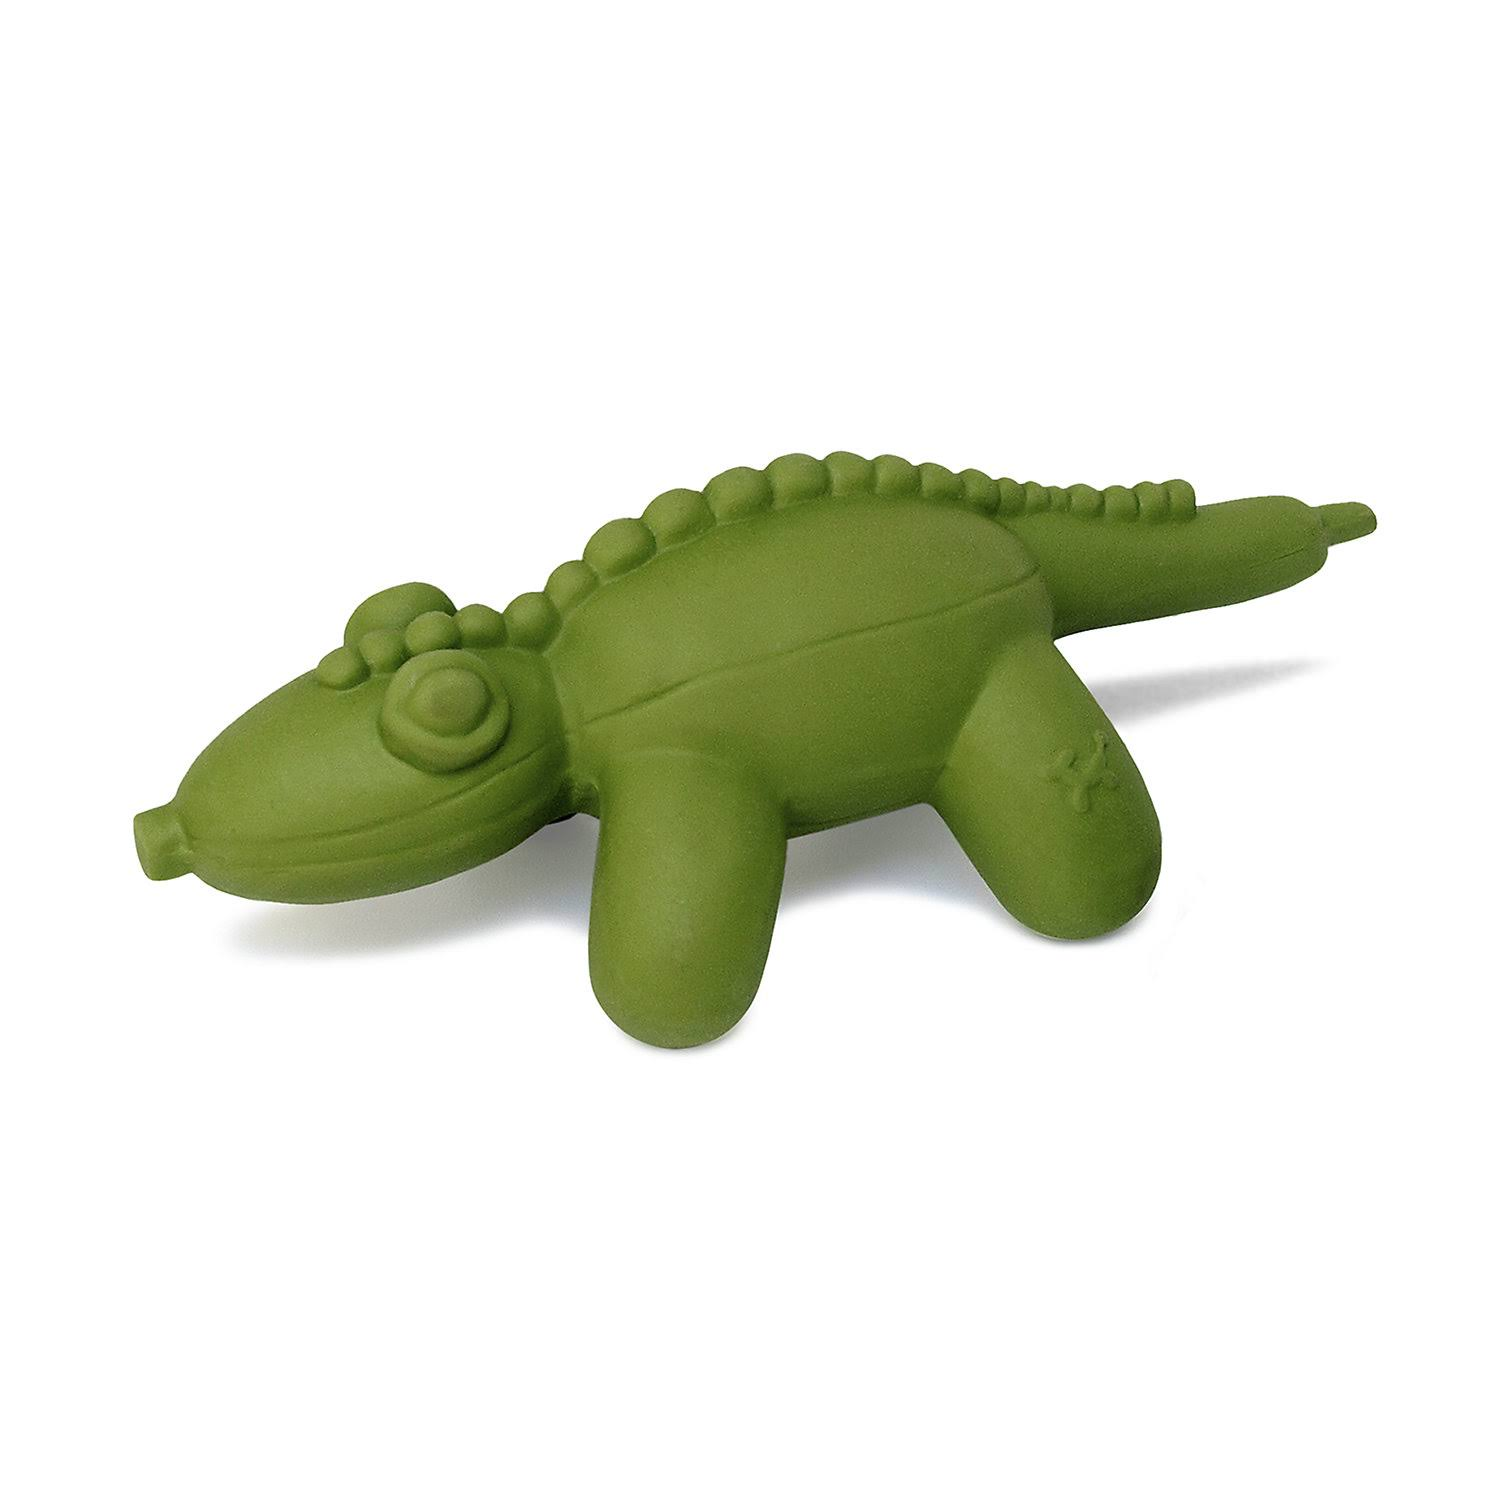 Charming Pet Products Cq00846 All-Natural Latex Gator Balloon Dog Toy - Large